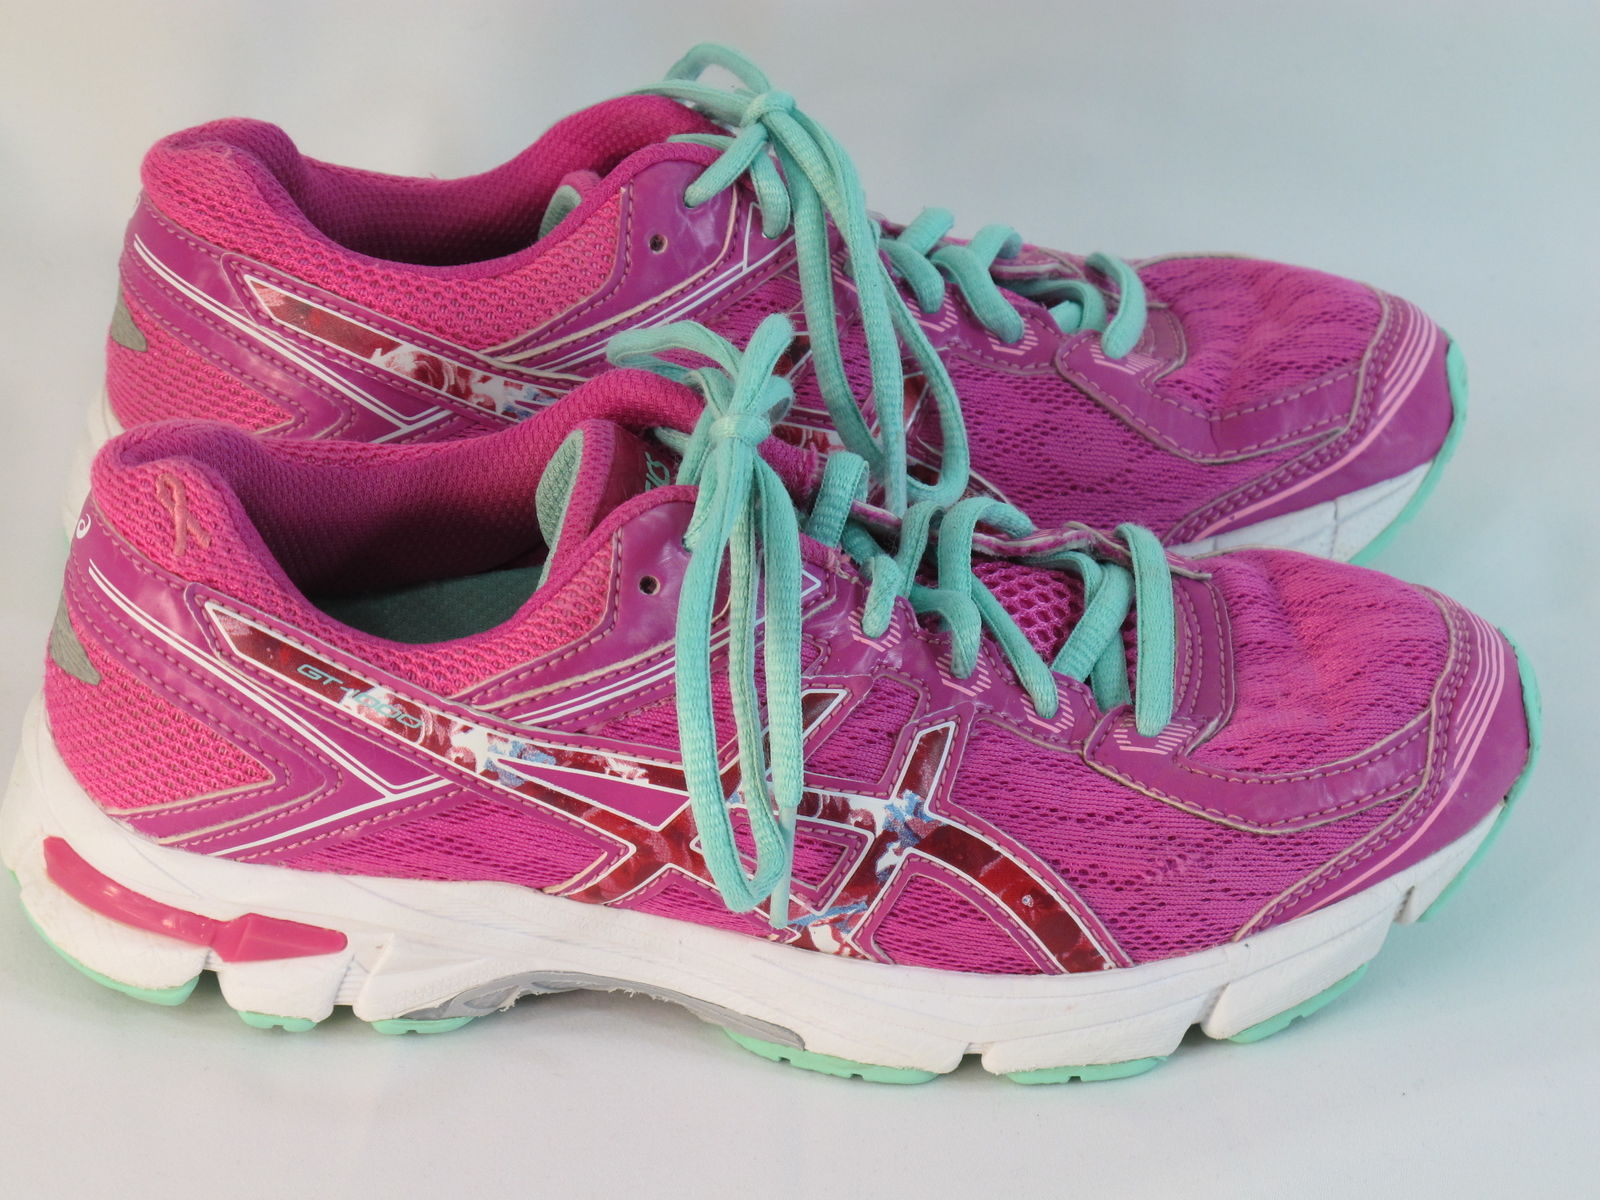 ASICS GT-1000 4 GS PR Running Shoes Girl's Size 4.5 US Excellent Plus Condition - $29.69